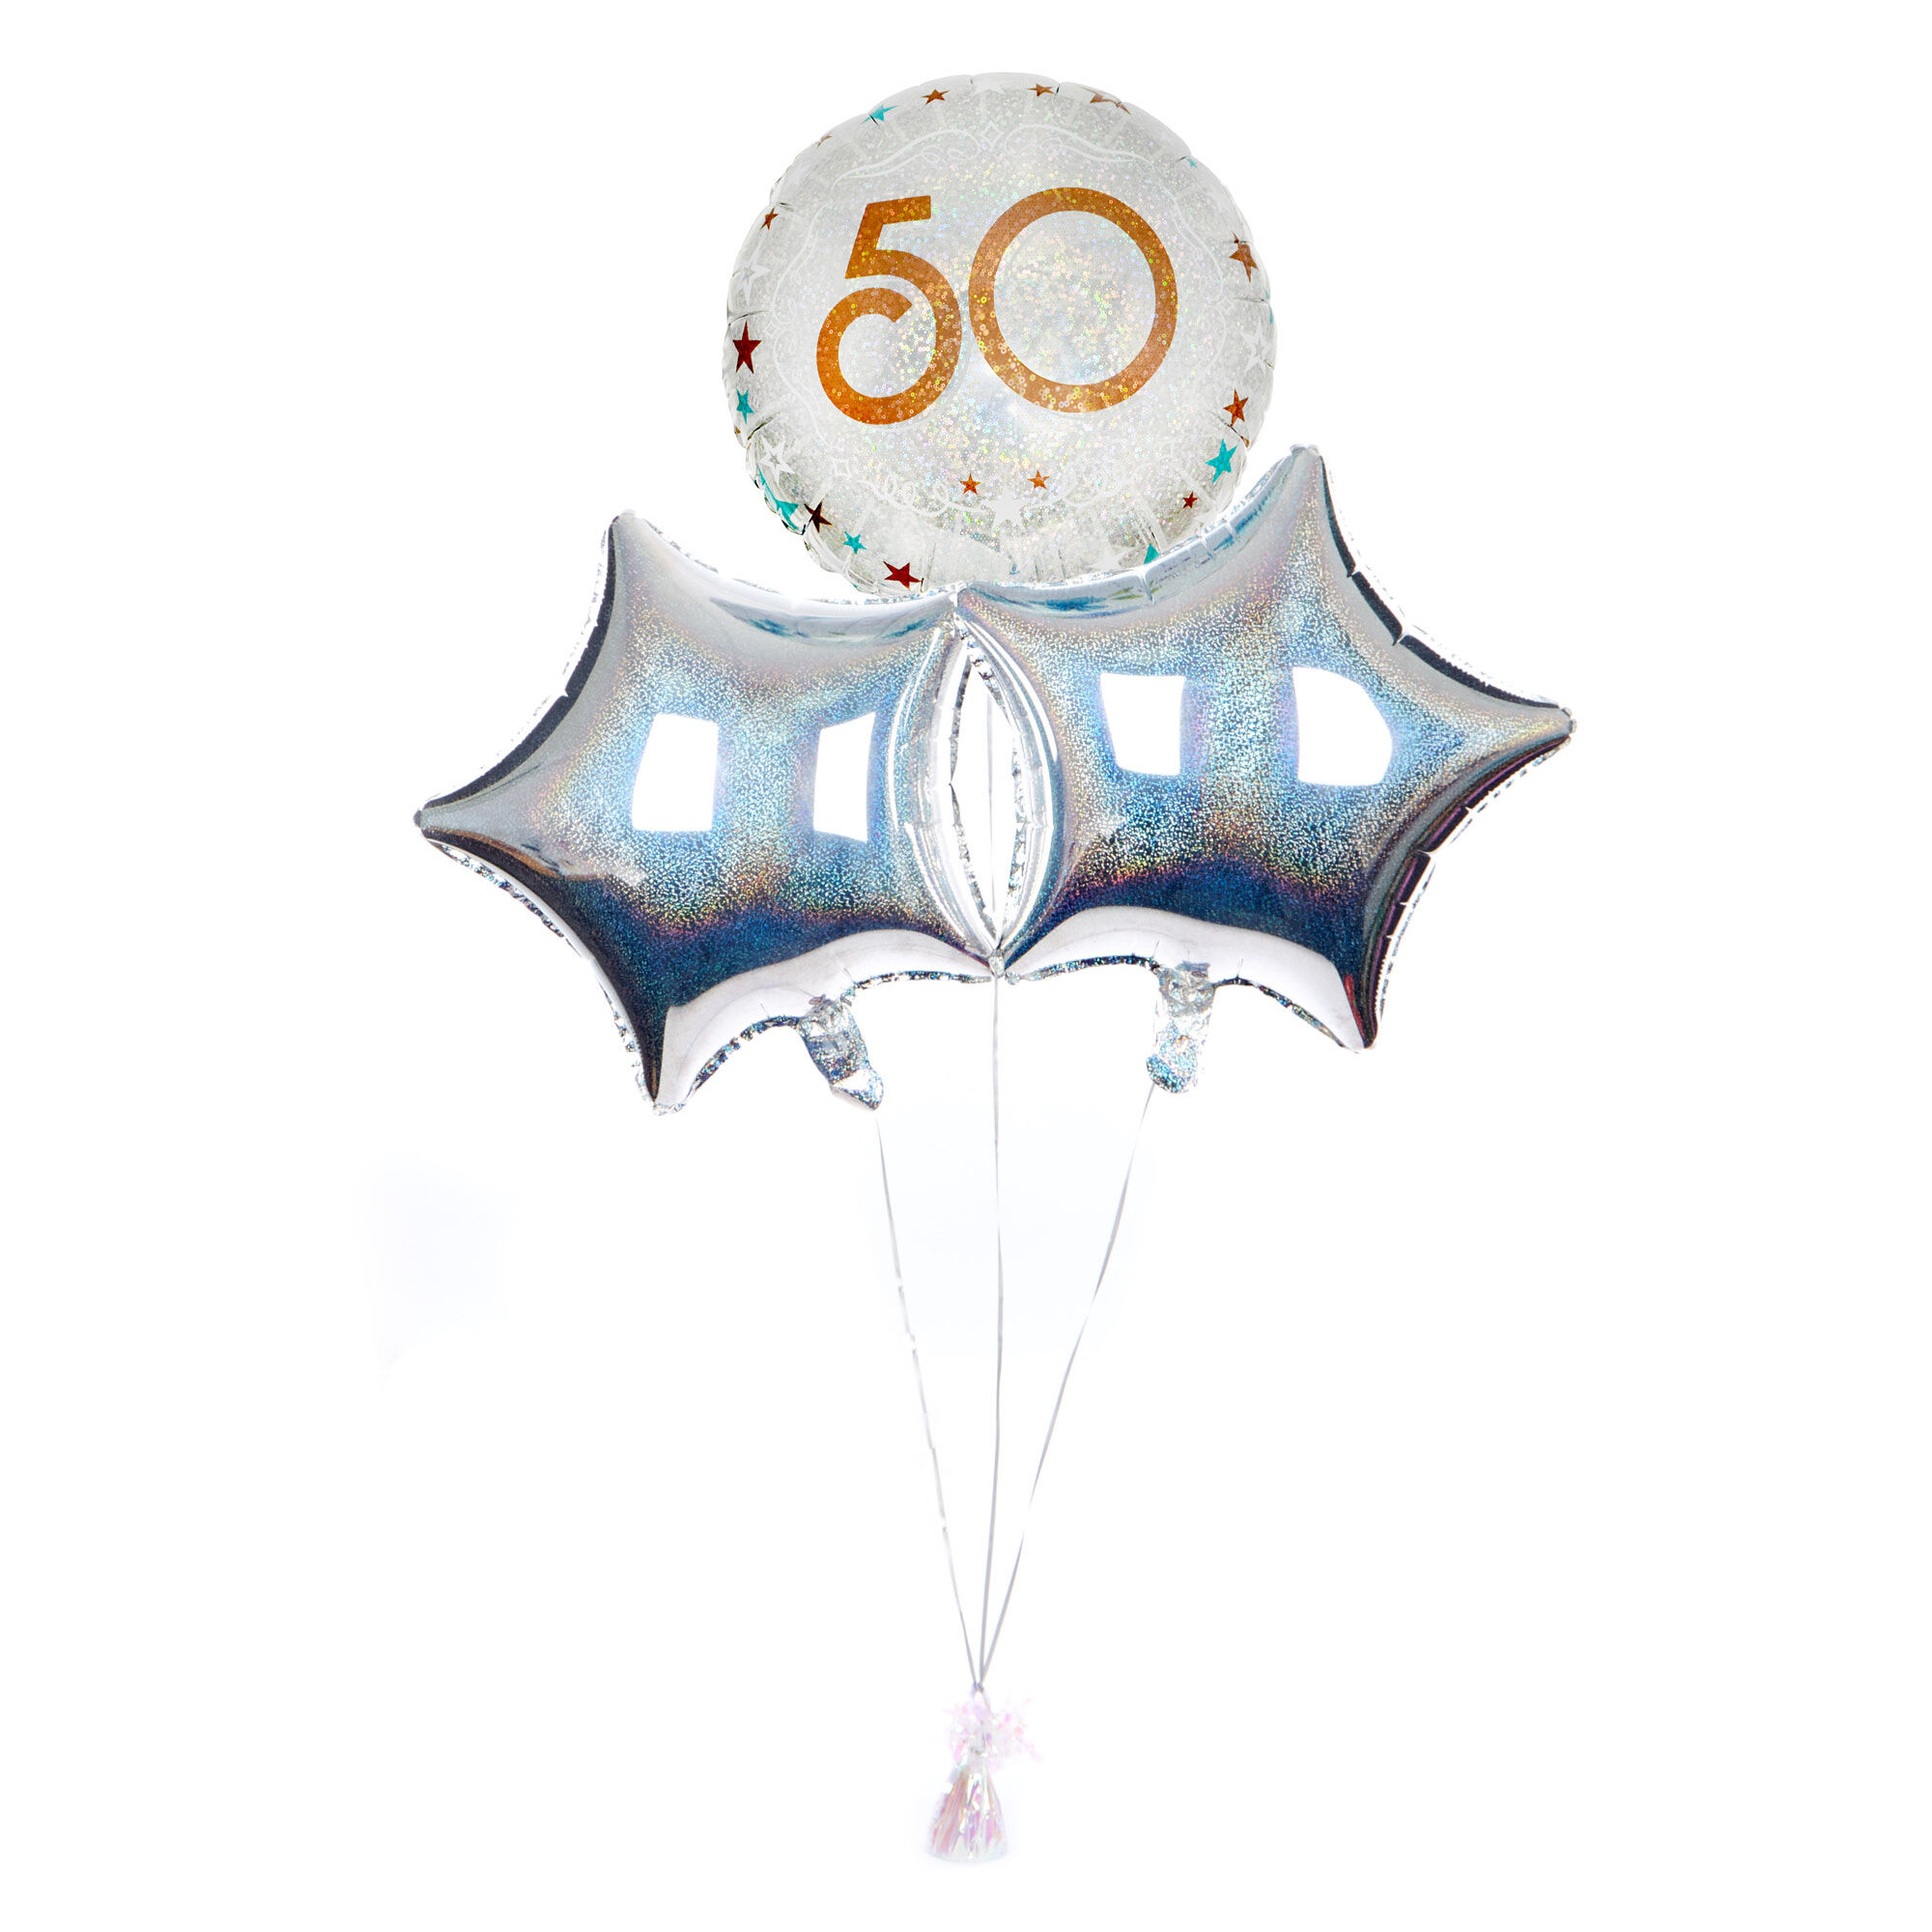 50th Birthday Decorations 50th Birthday Party Banners Table Decorations Uk Card Factory